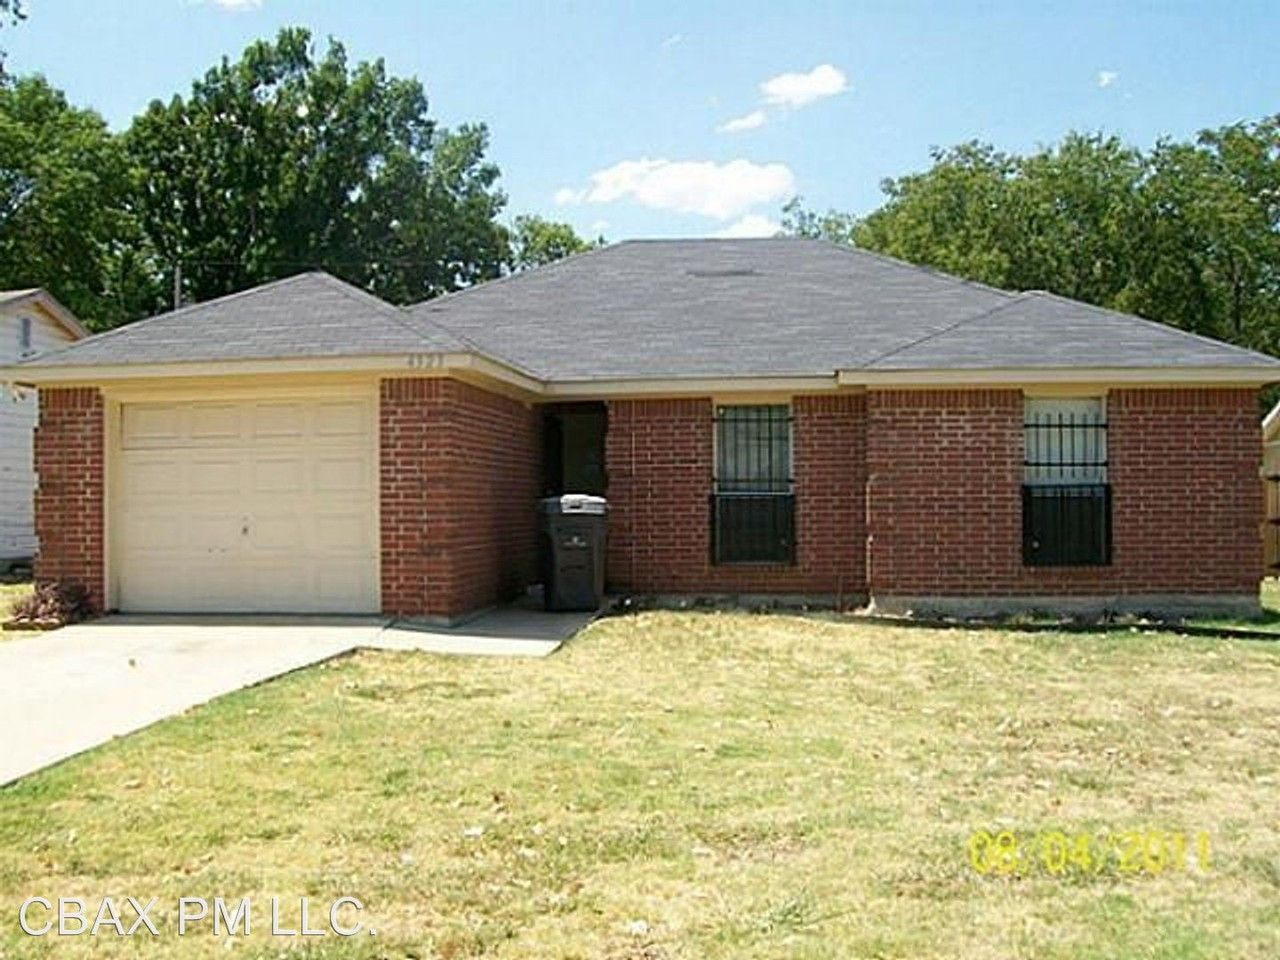 4323 bonnie view rd dallas tx 75216 3 bedroom house for